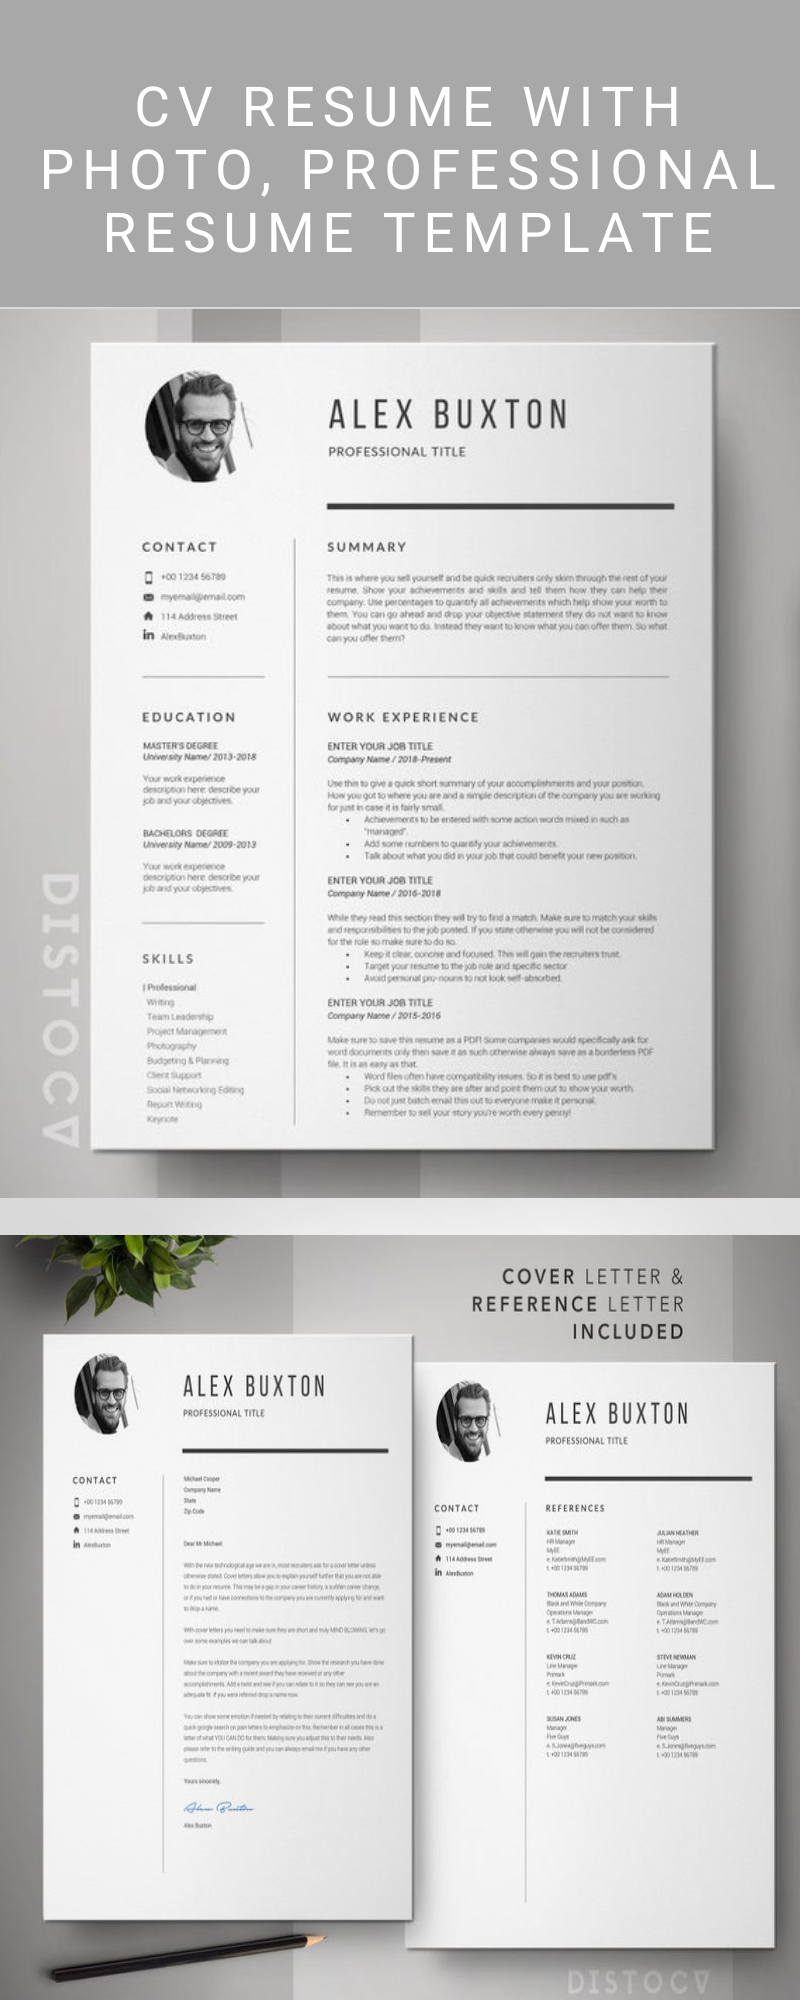 CV Resume With Photo, Professional Resume Template, CV